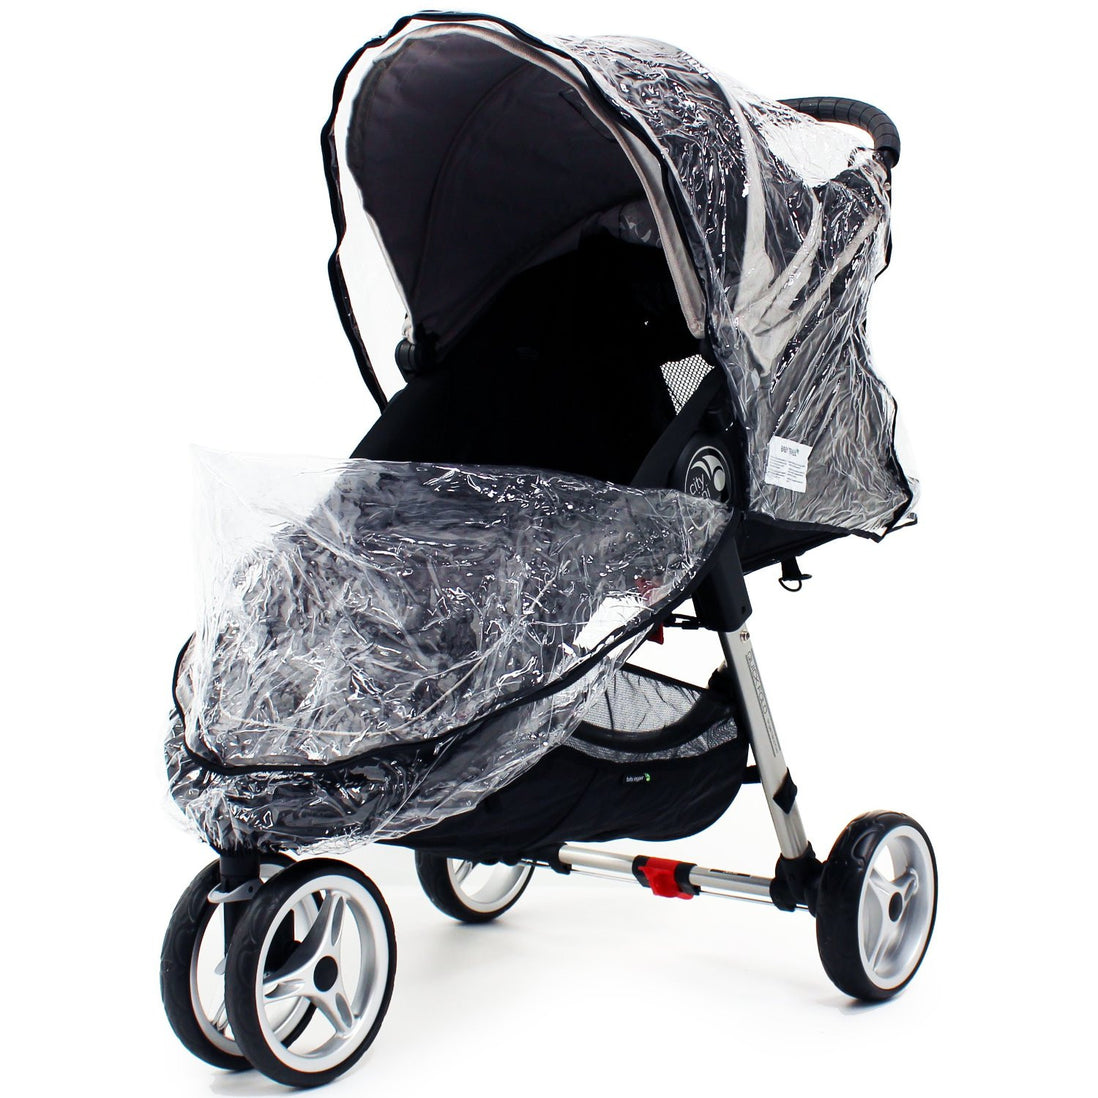 Raincover Compatible With Red Kite Push Me Jogger